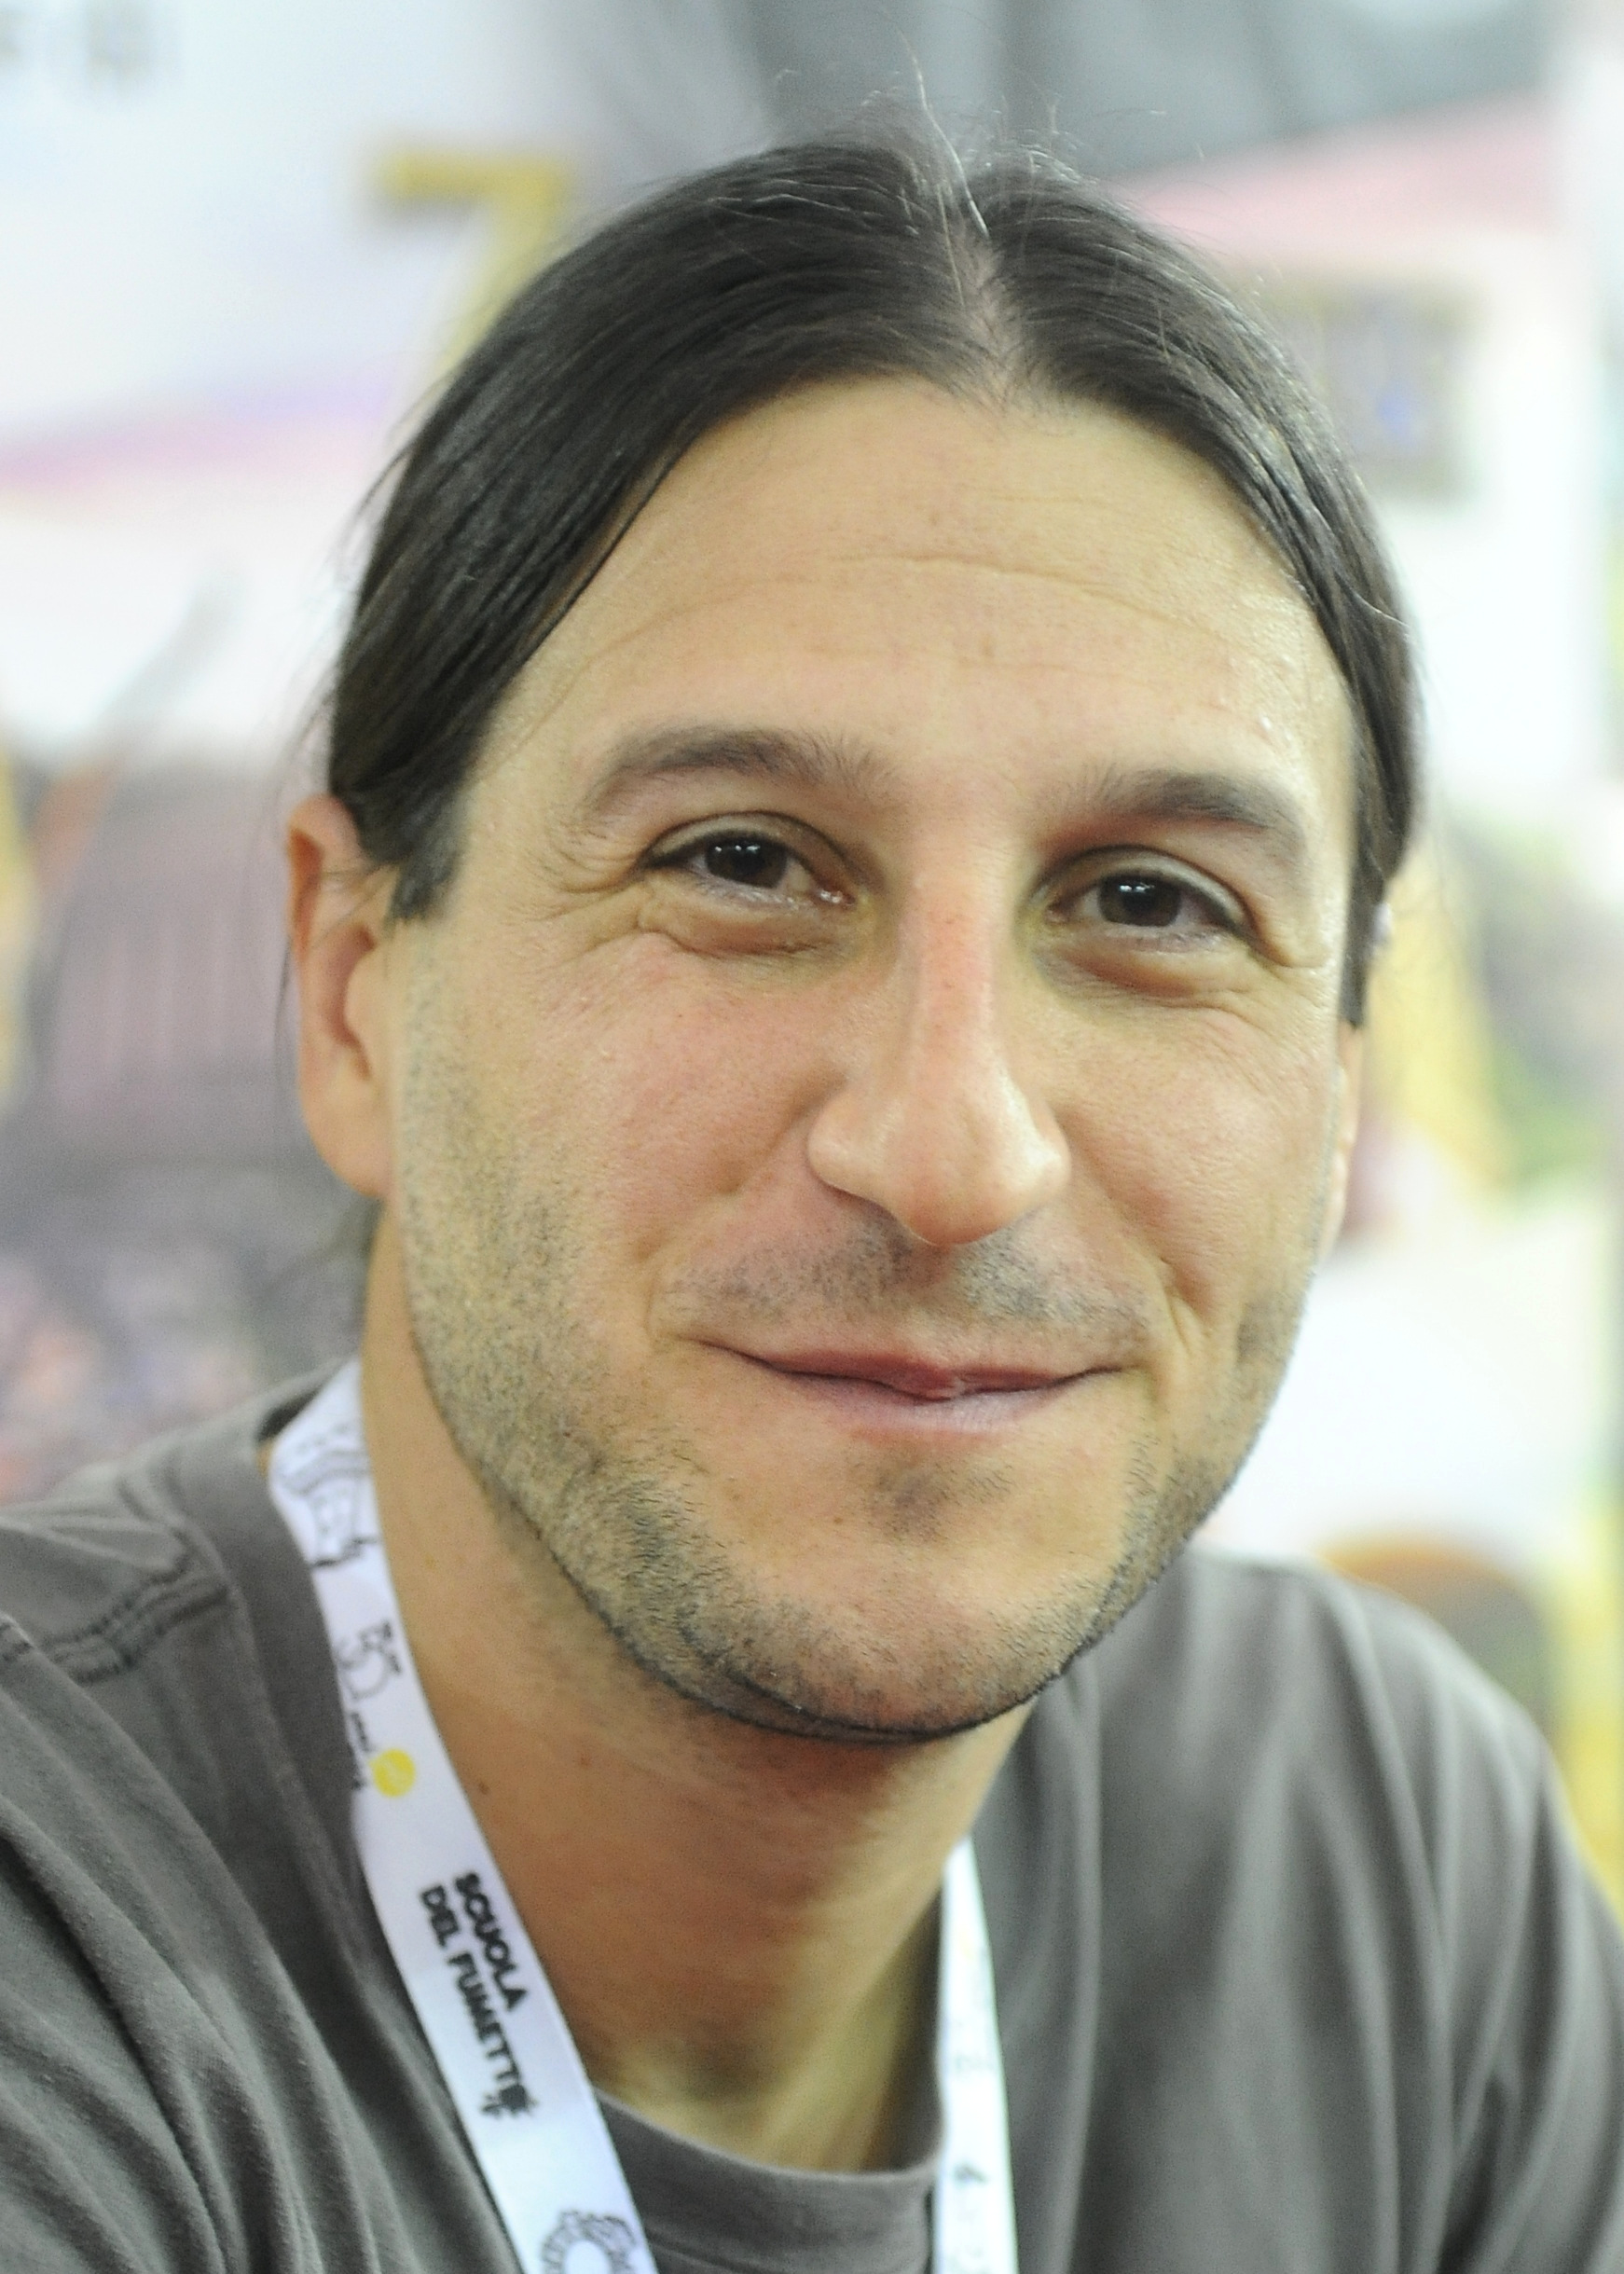 Bauza at the [[Lucca Comics & Games]] convention in 2016.